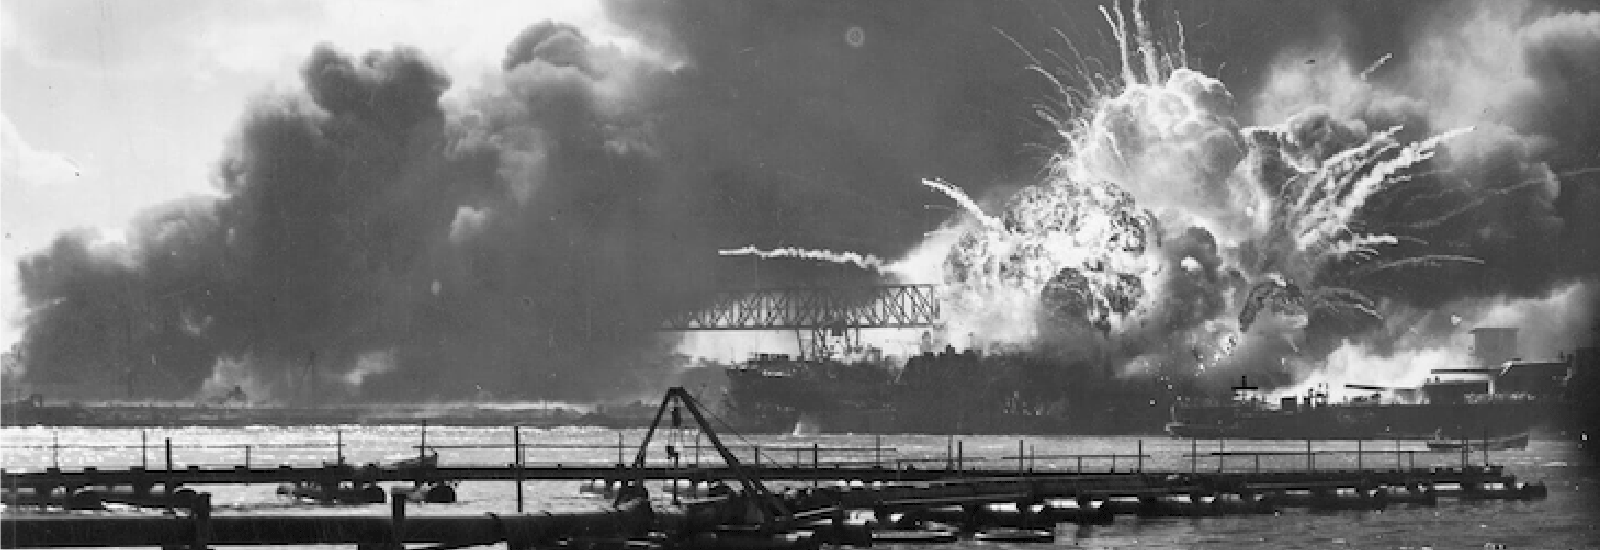 What Happened at Pearl Harbor?